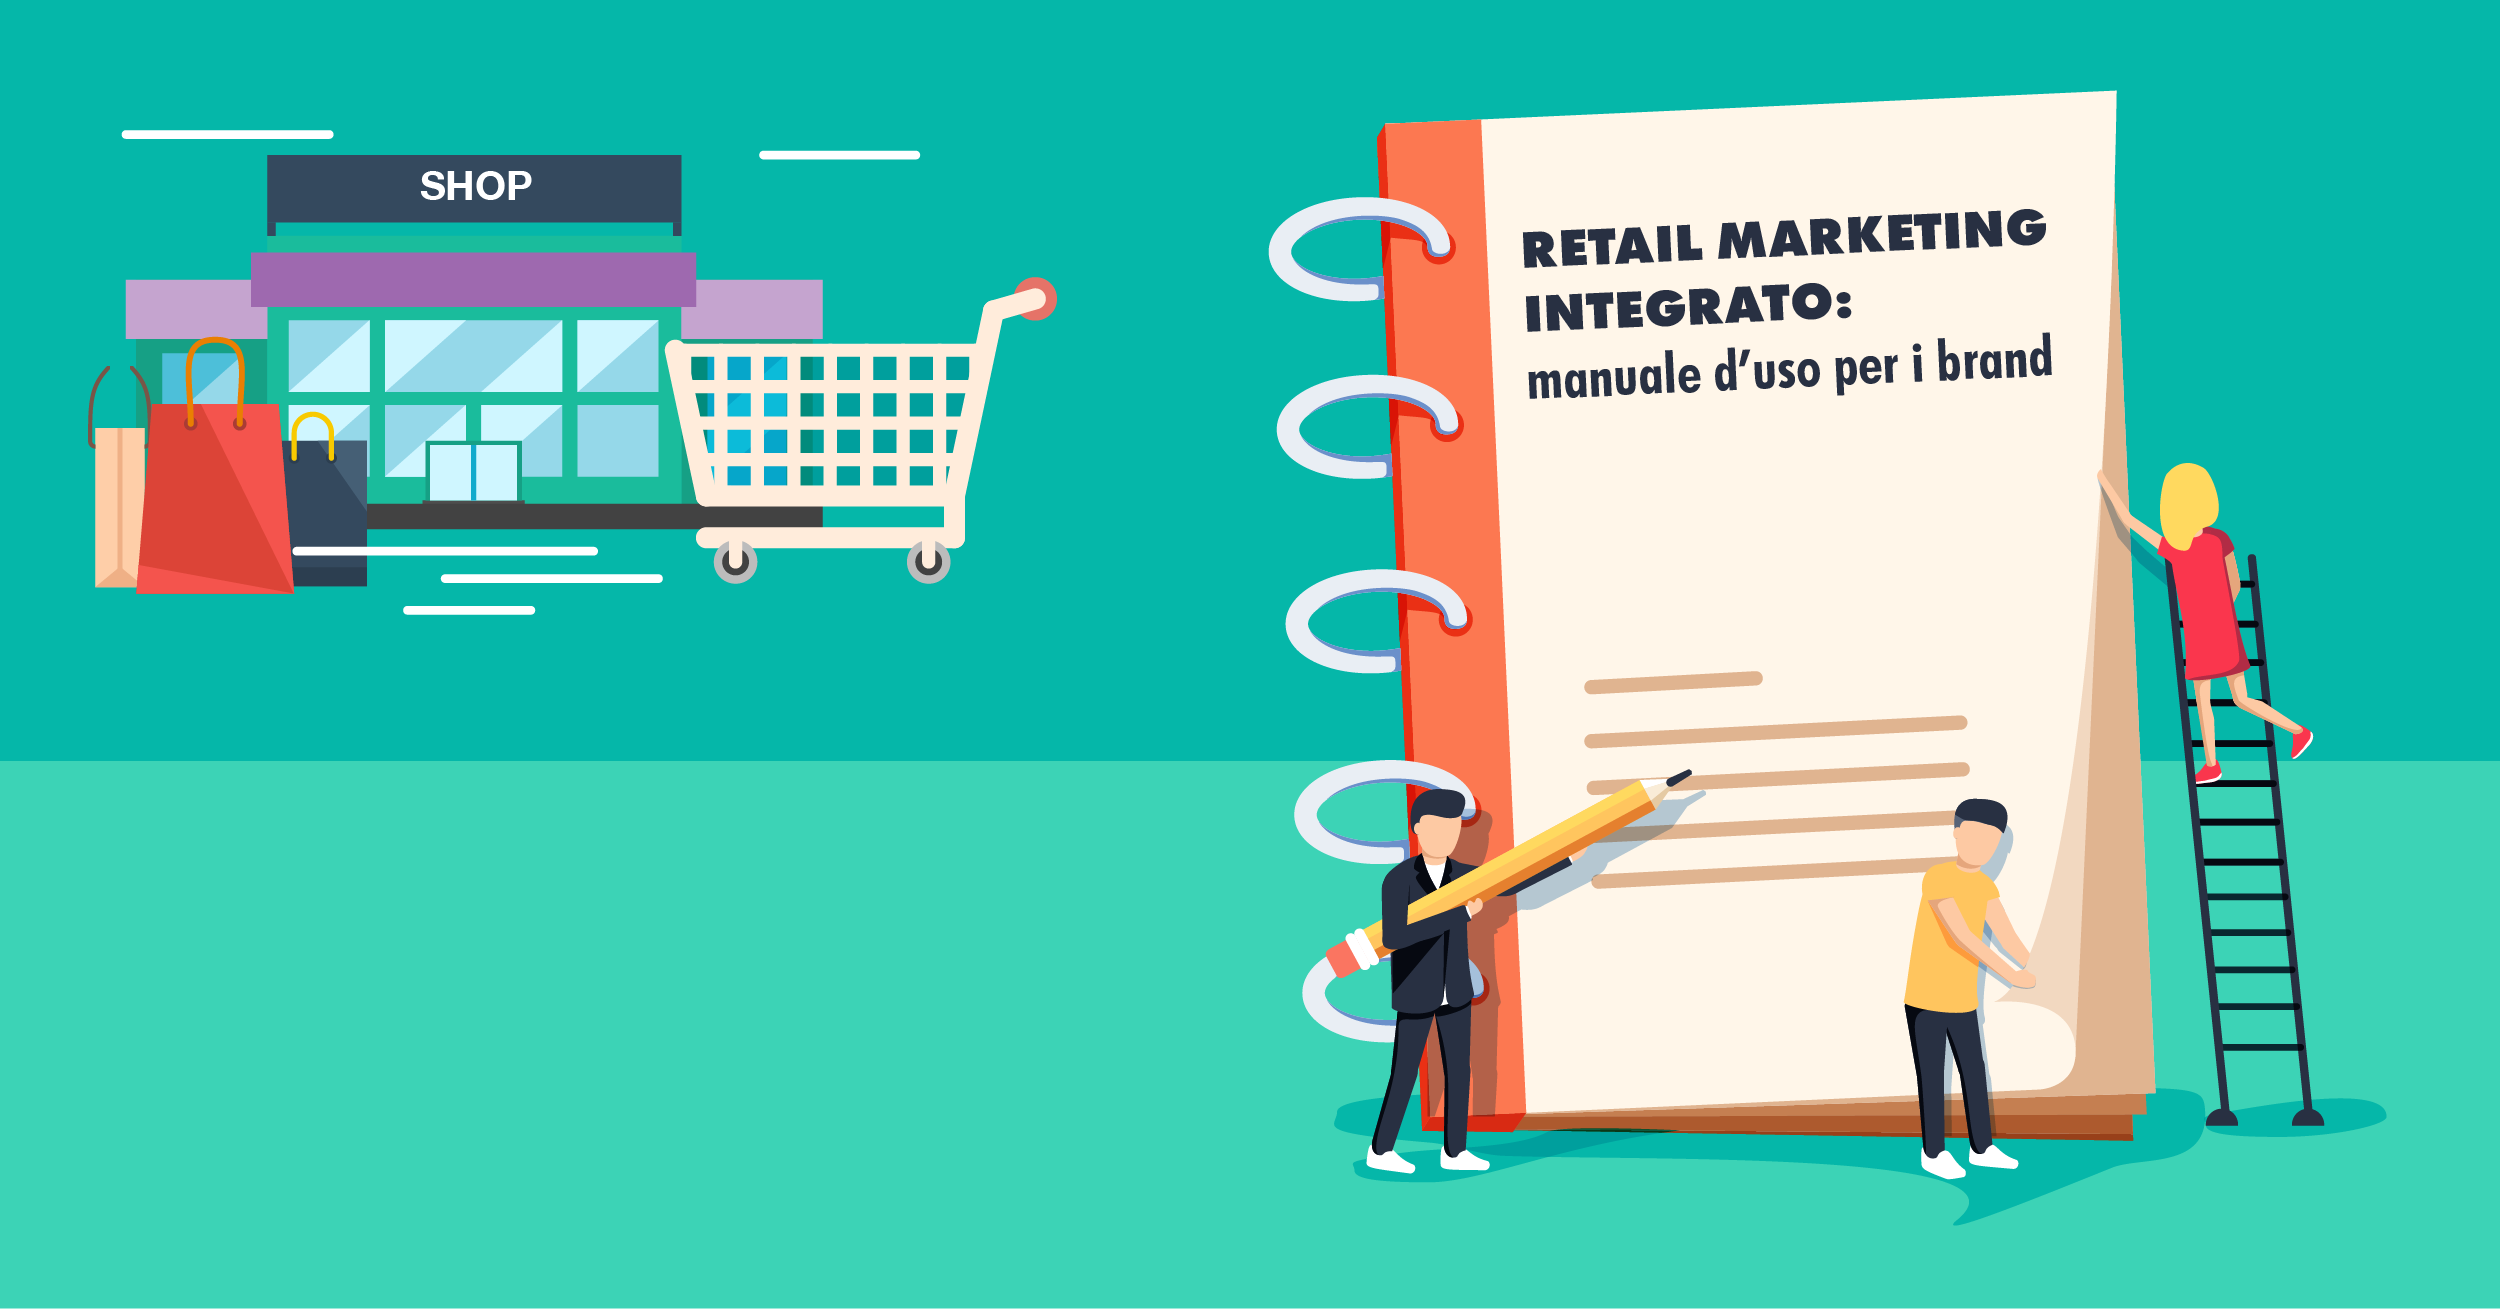 Retail Marketing integrato